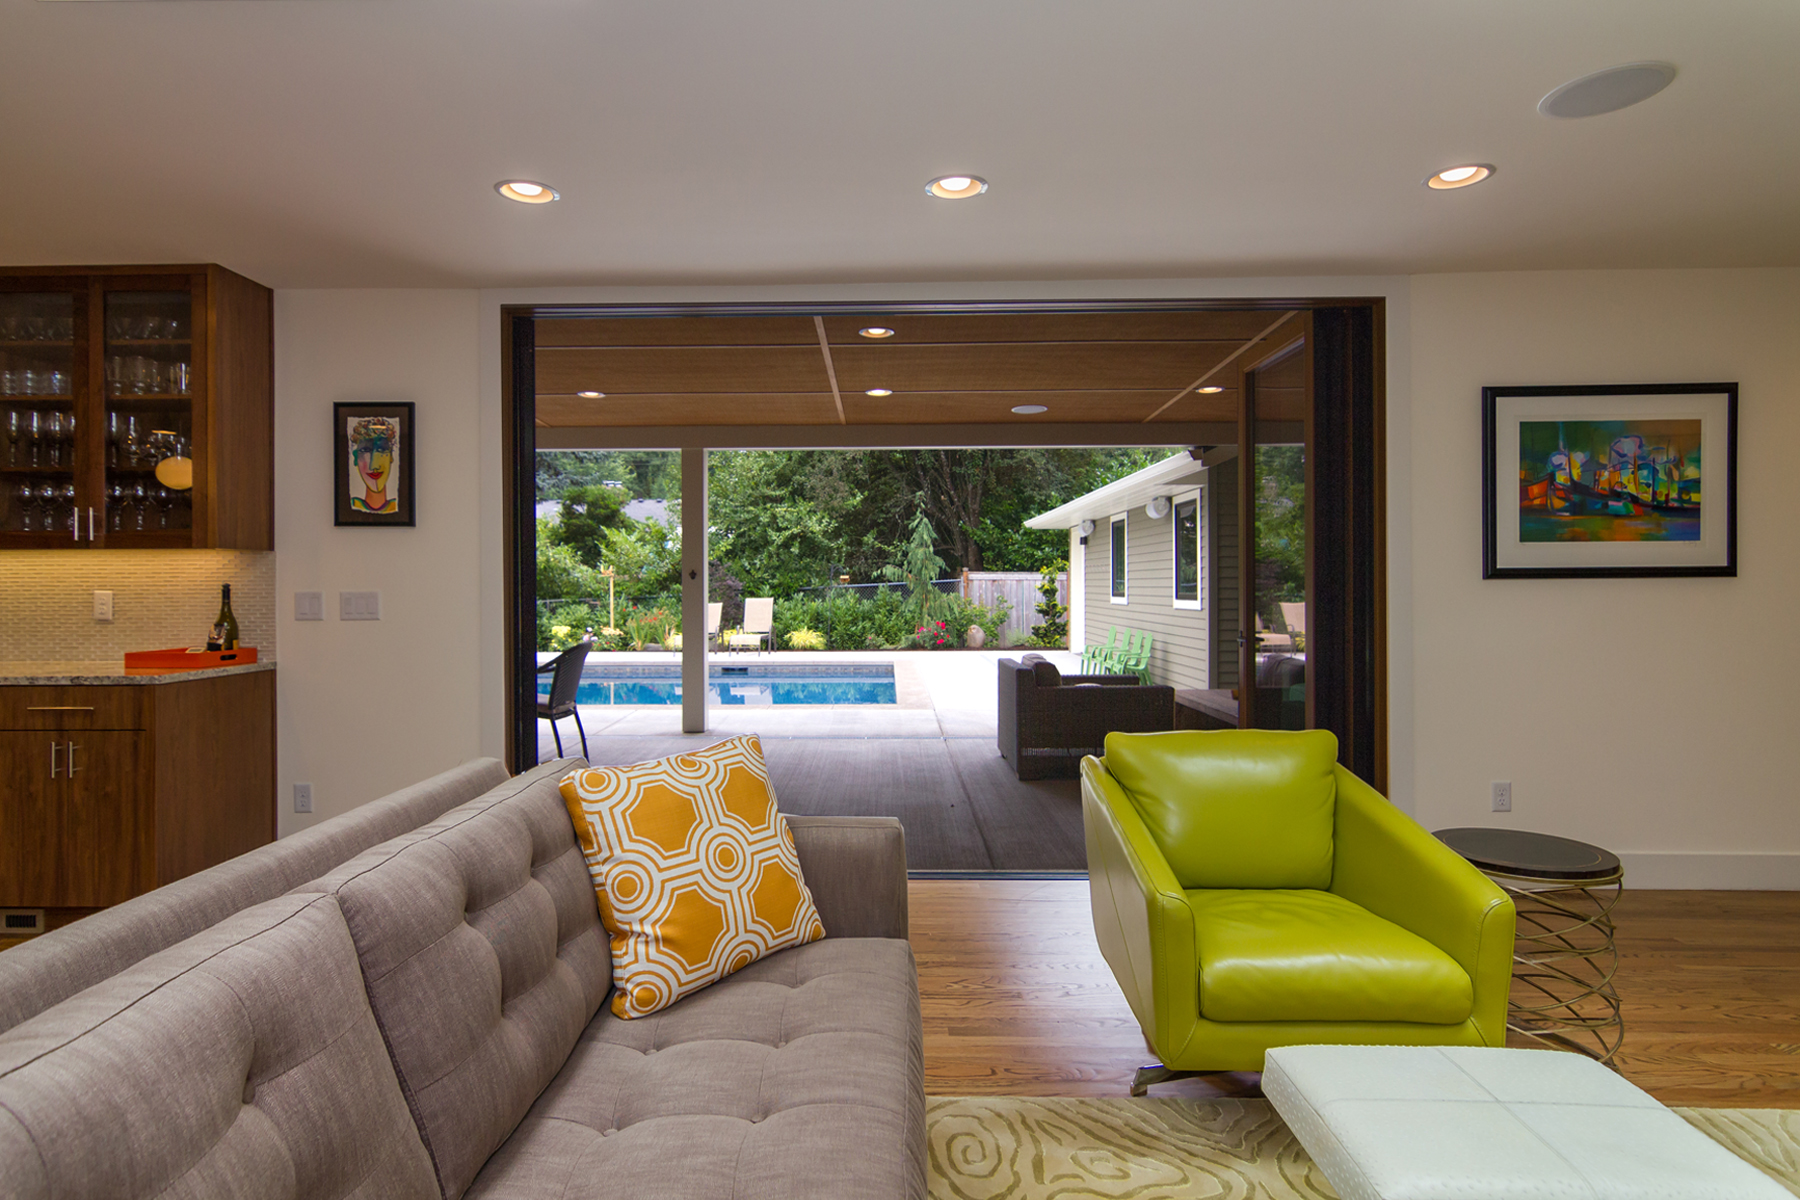 Through the La Cantina doors to exteriorliving space under covered veranda and pool. Lot was regraded for seamless transition inspired by universal design.